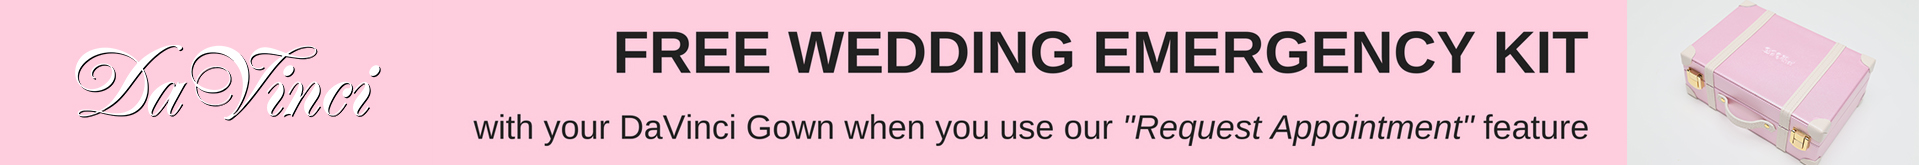 Free Wedding Emergency Kit with your DaVinci Gown when you use our Request Appointment Feature.